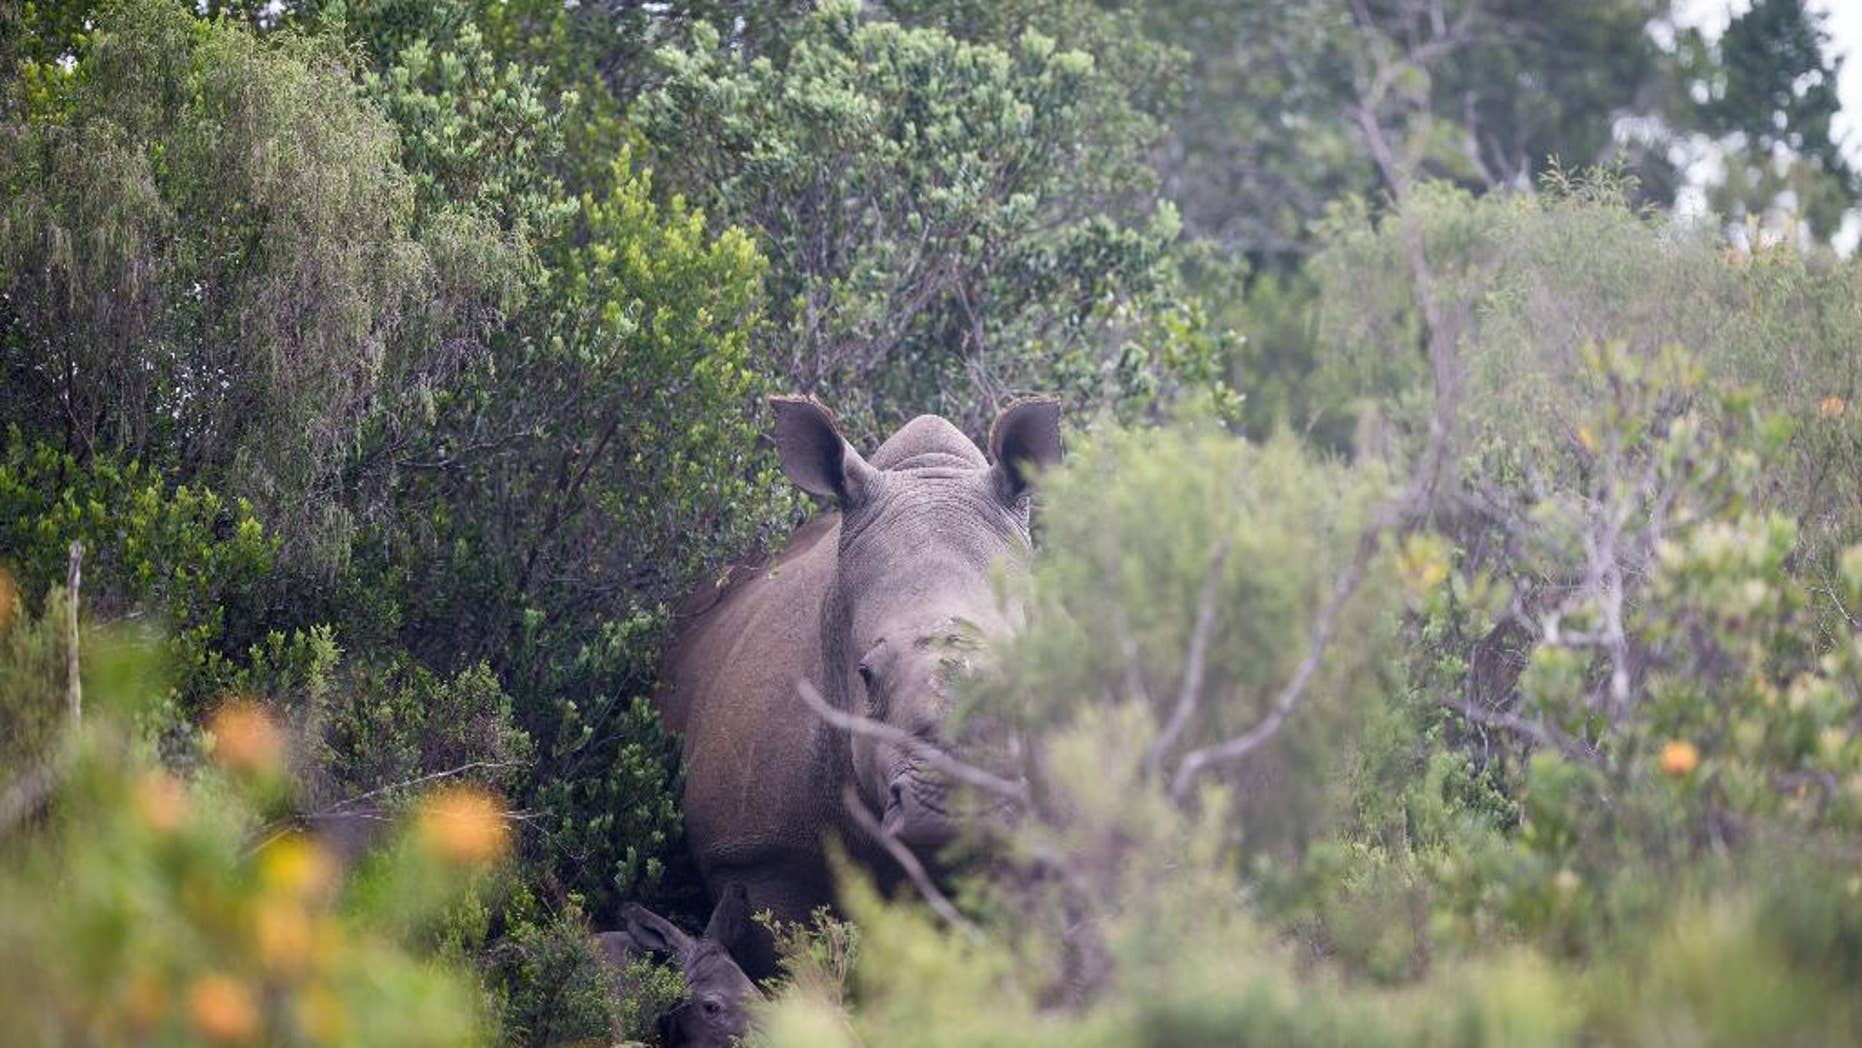 This handout photo from the Kariega Game Reserve taken Tuesday, Jan. 13, 2015 shows rhino poaching survivor Thandi with her newly born calf in the Kariega Game Reserve near Port Elizabeth, in the eastern Cape Province. Thandi, was rescued in March 2012 after poachers hacked off her horn, and left her to bleed to death along with two male rhinos. (AP Photo/Adrian Steirn, Kariega Game Reserve) NO ARCHIVE.